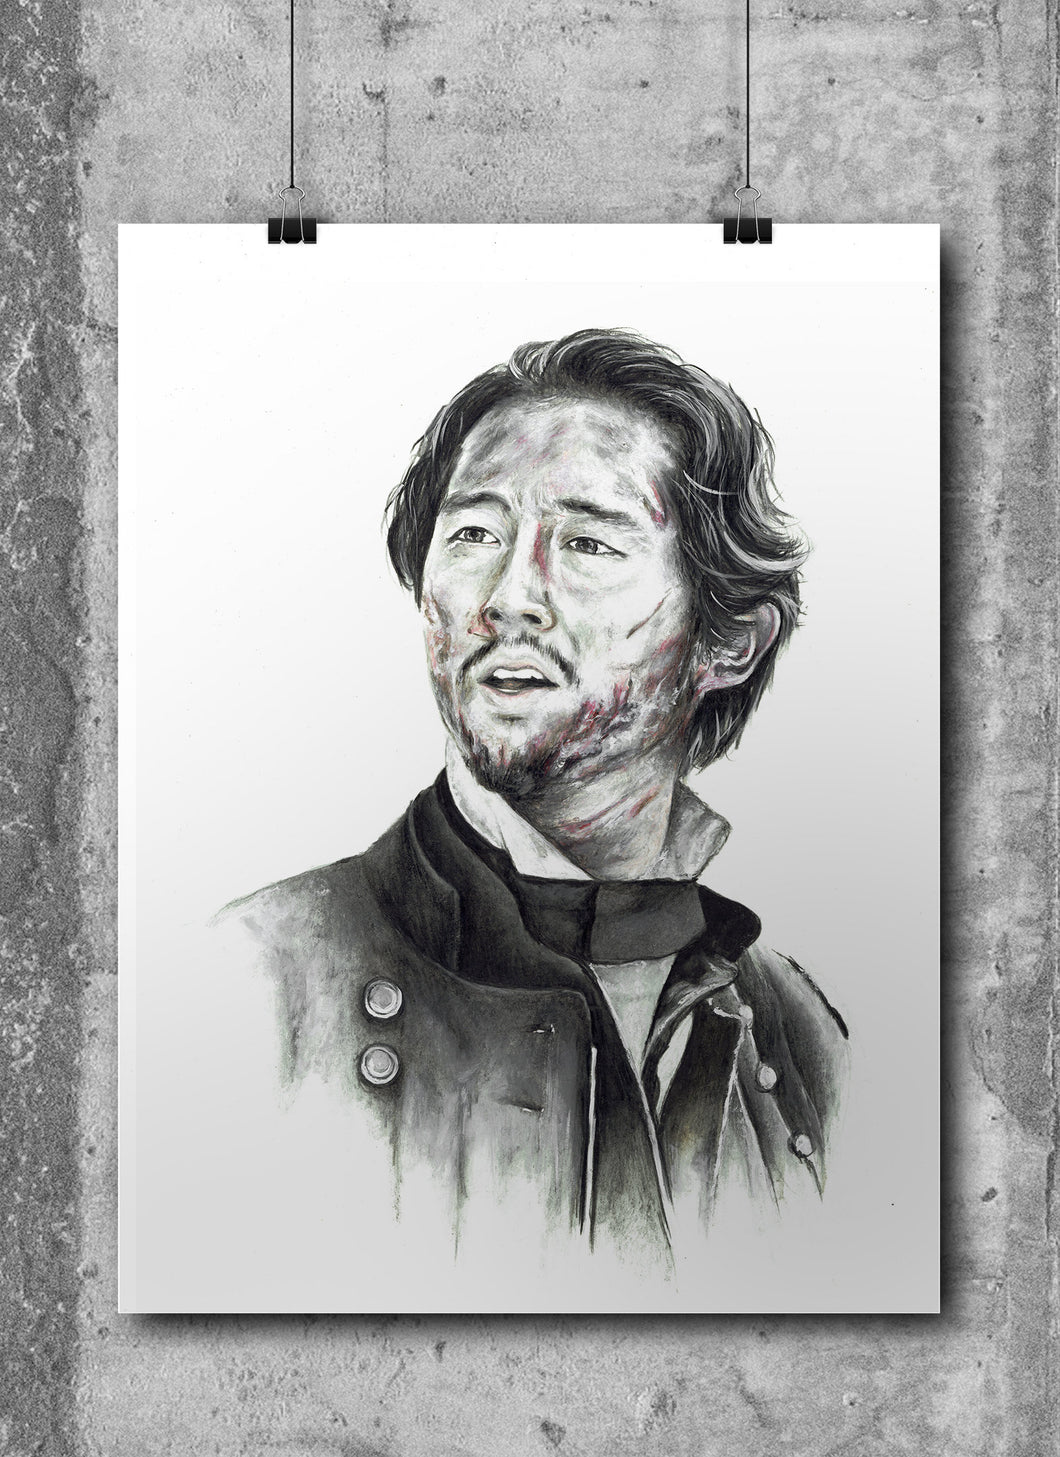 Glen/The Walking Dead/Limited Edition/Hand Drawing by Wil Shrike